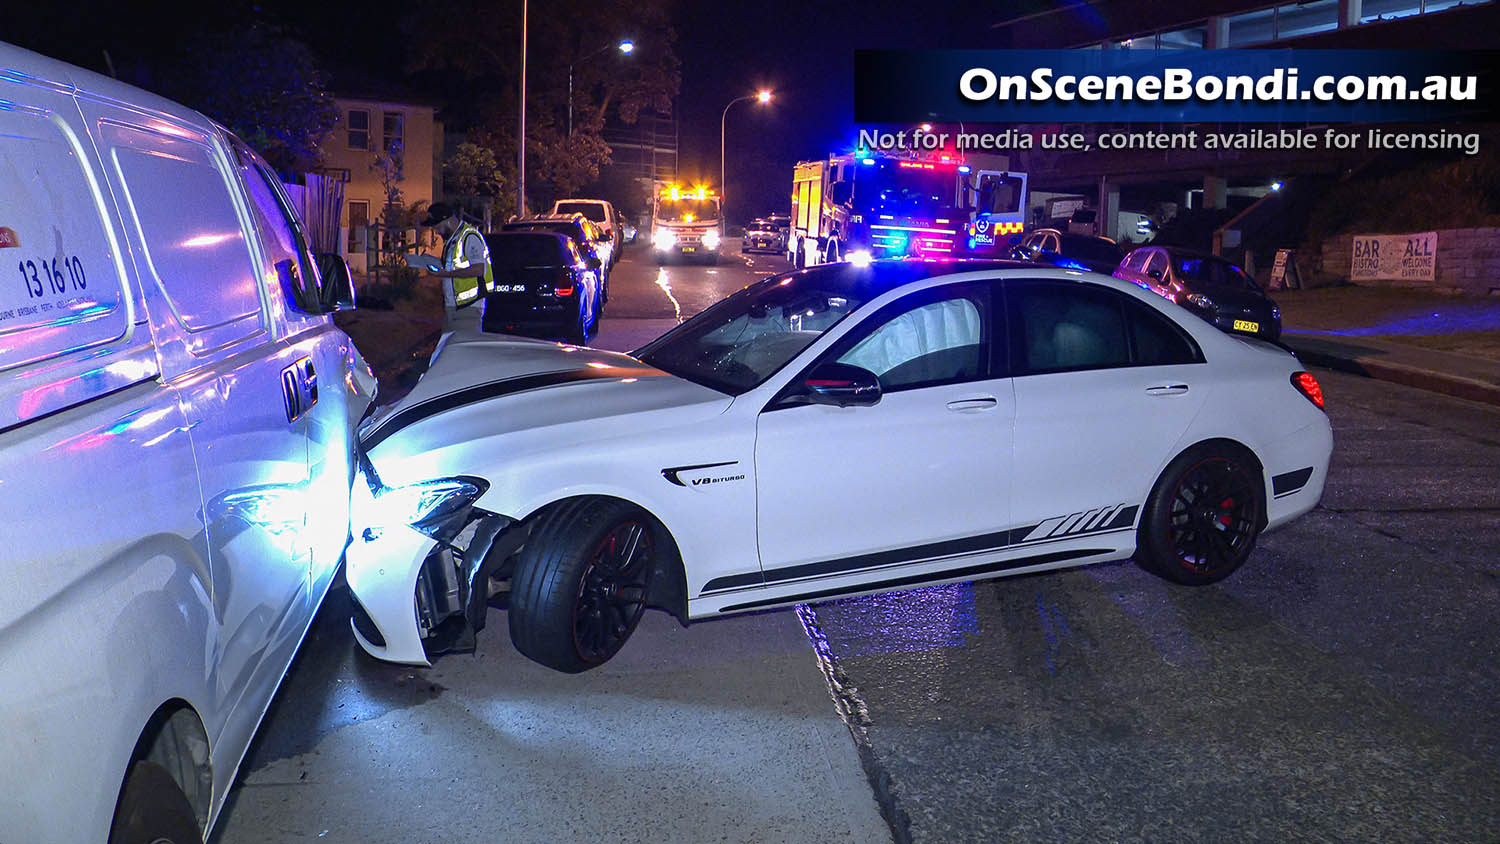 Four cars damaged after crash in Bondi overnight